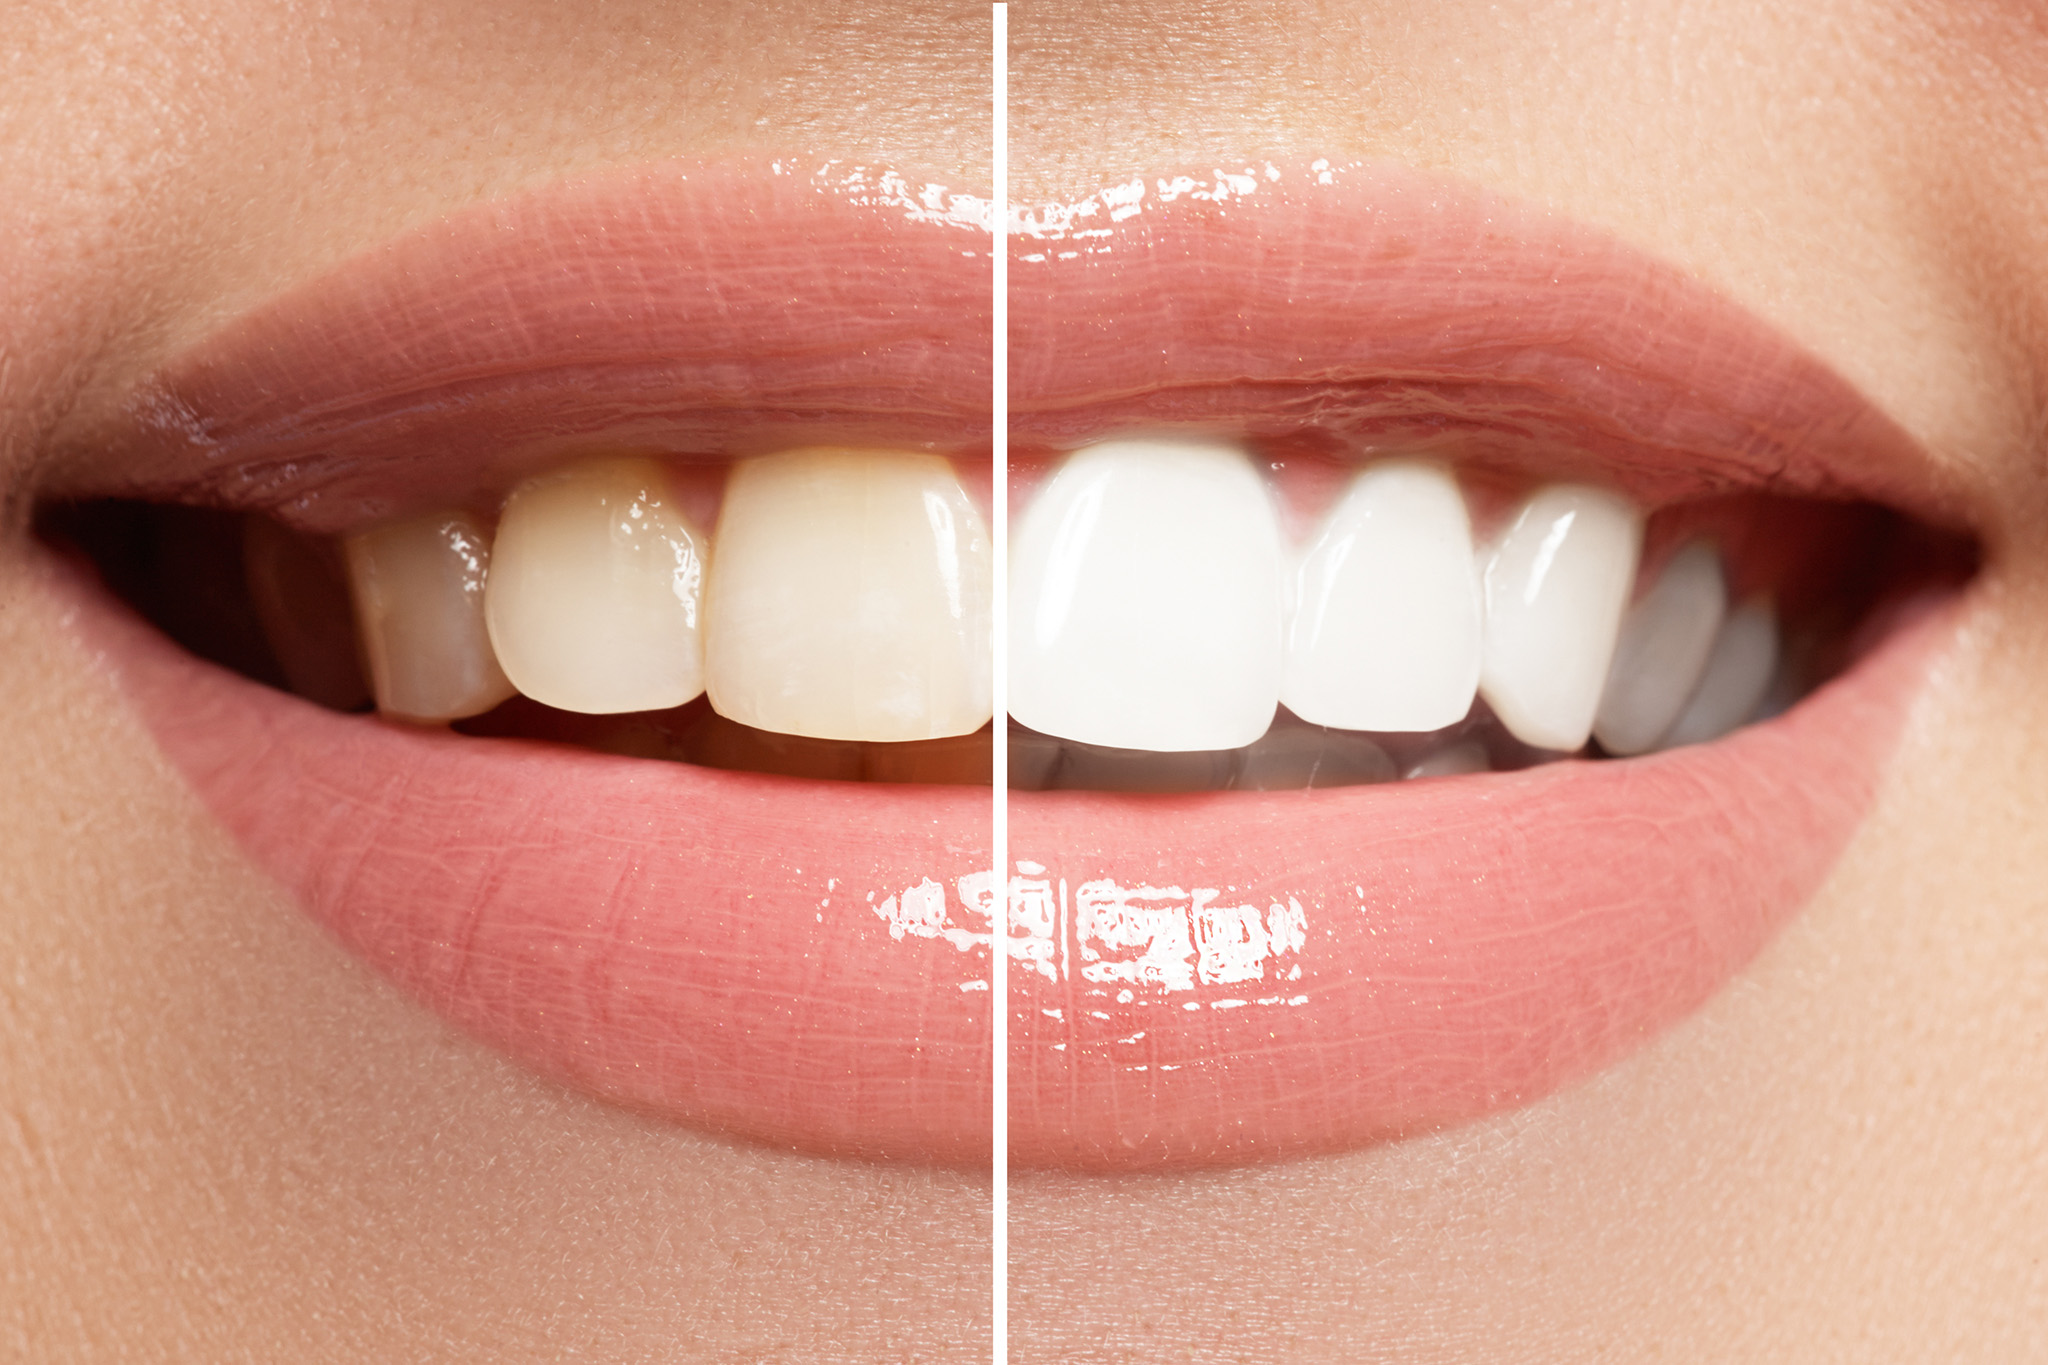 before-and-after-dental-hygienist-visit-at-family-practice-in-thanet.jpg